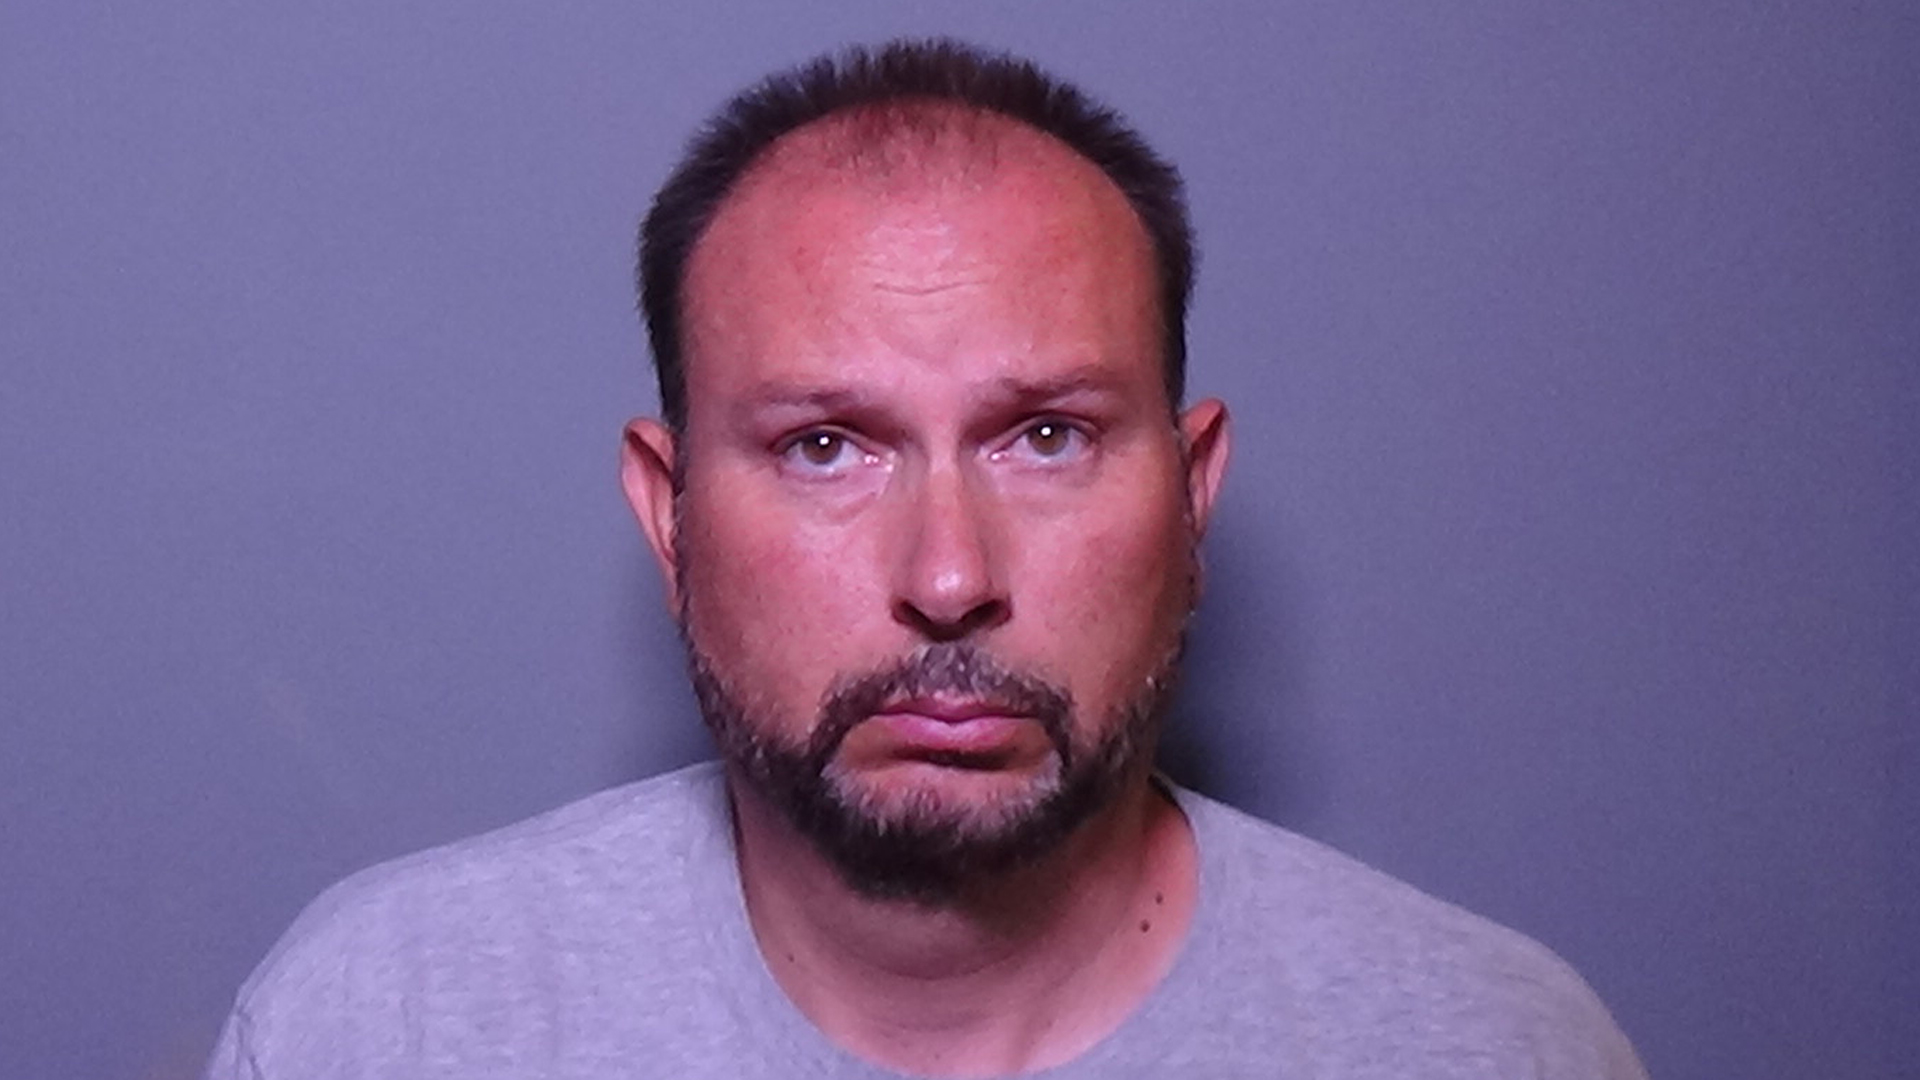 Daniel Methe is shown in a photo released by the Orange County Sheriff's Department on July 25, 2019.